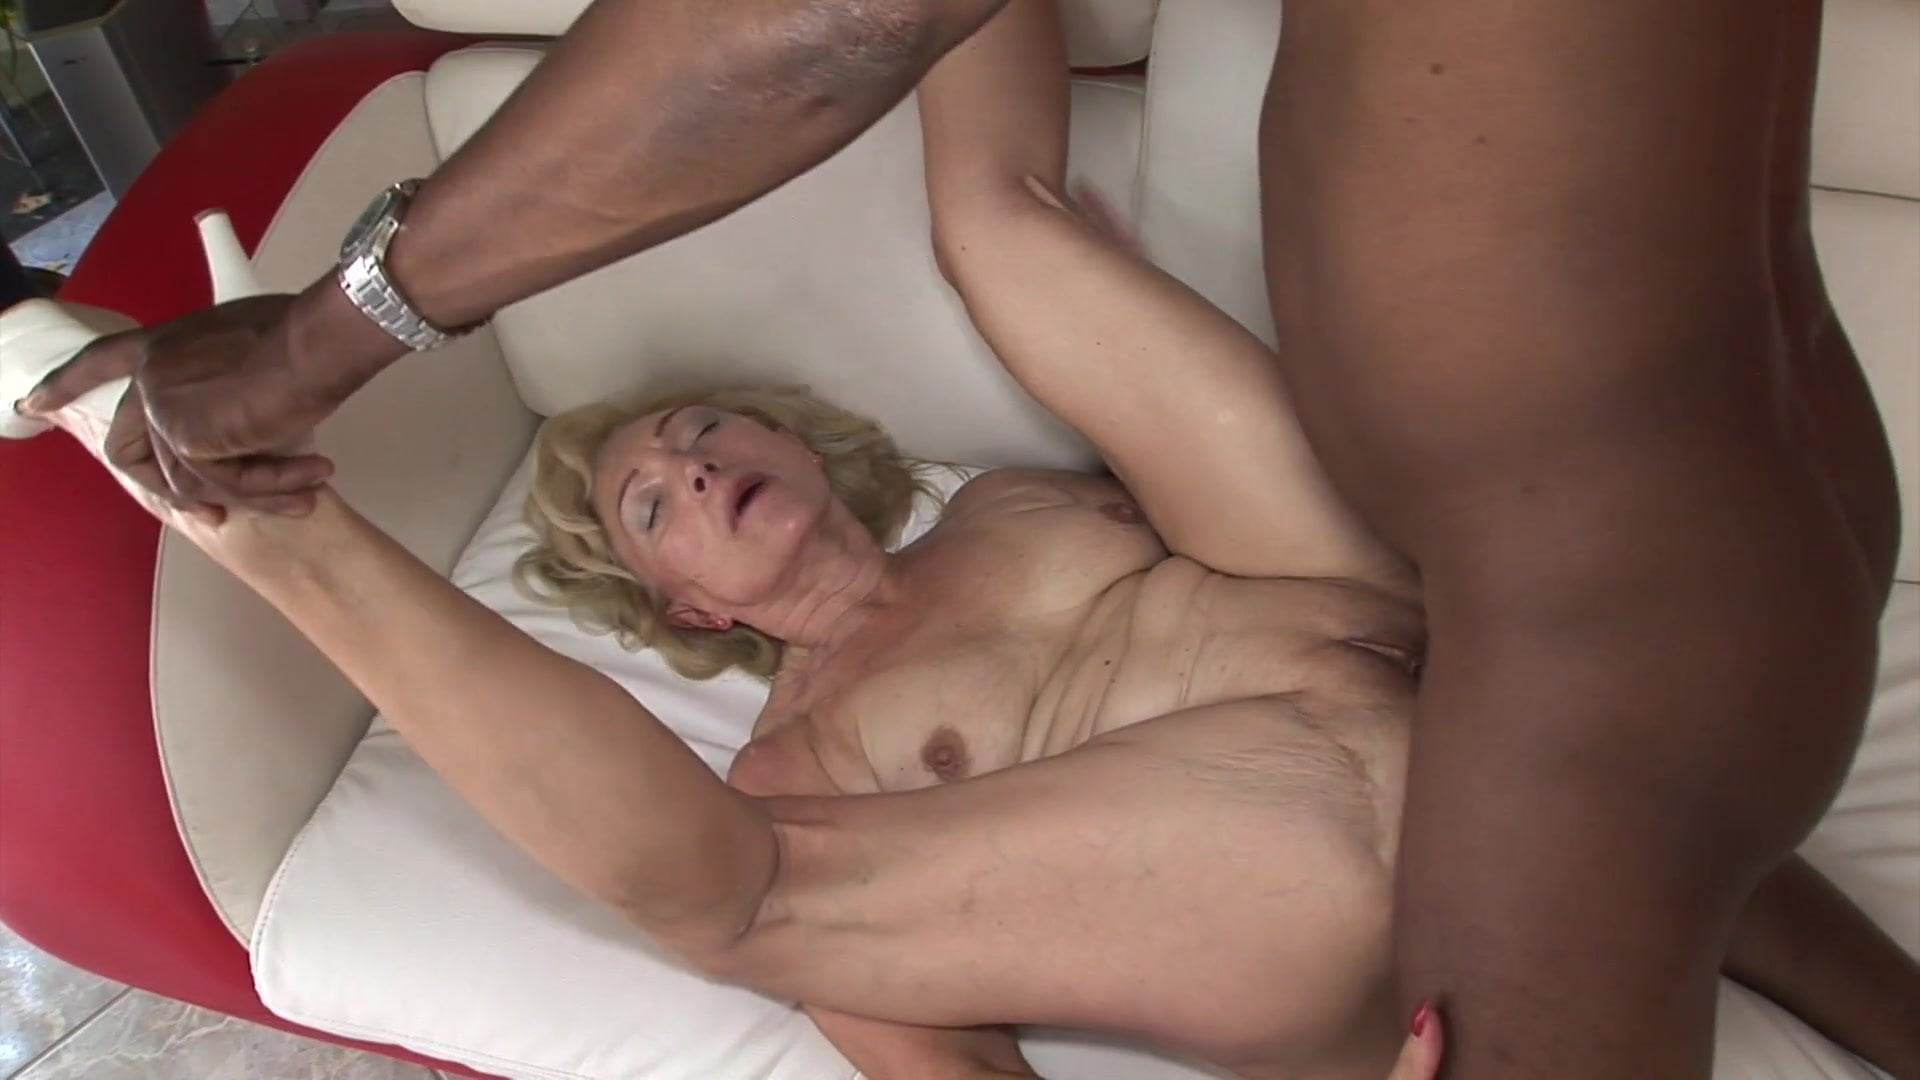 Granny Wants The Black Cock, Free Free Black No Sign Up Hd -9611